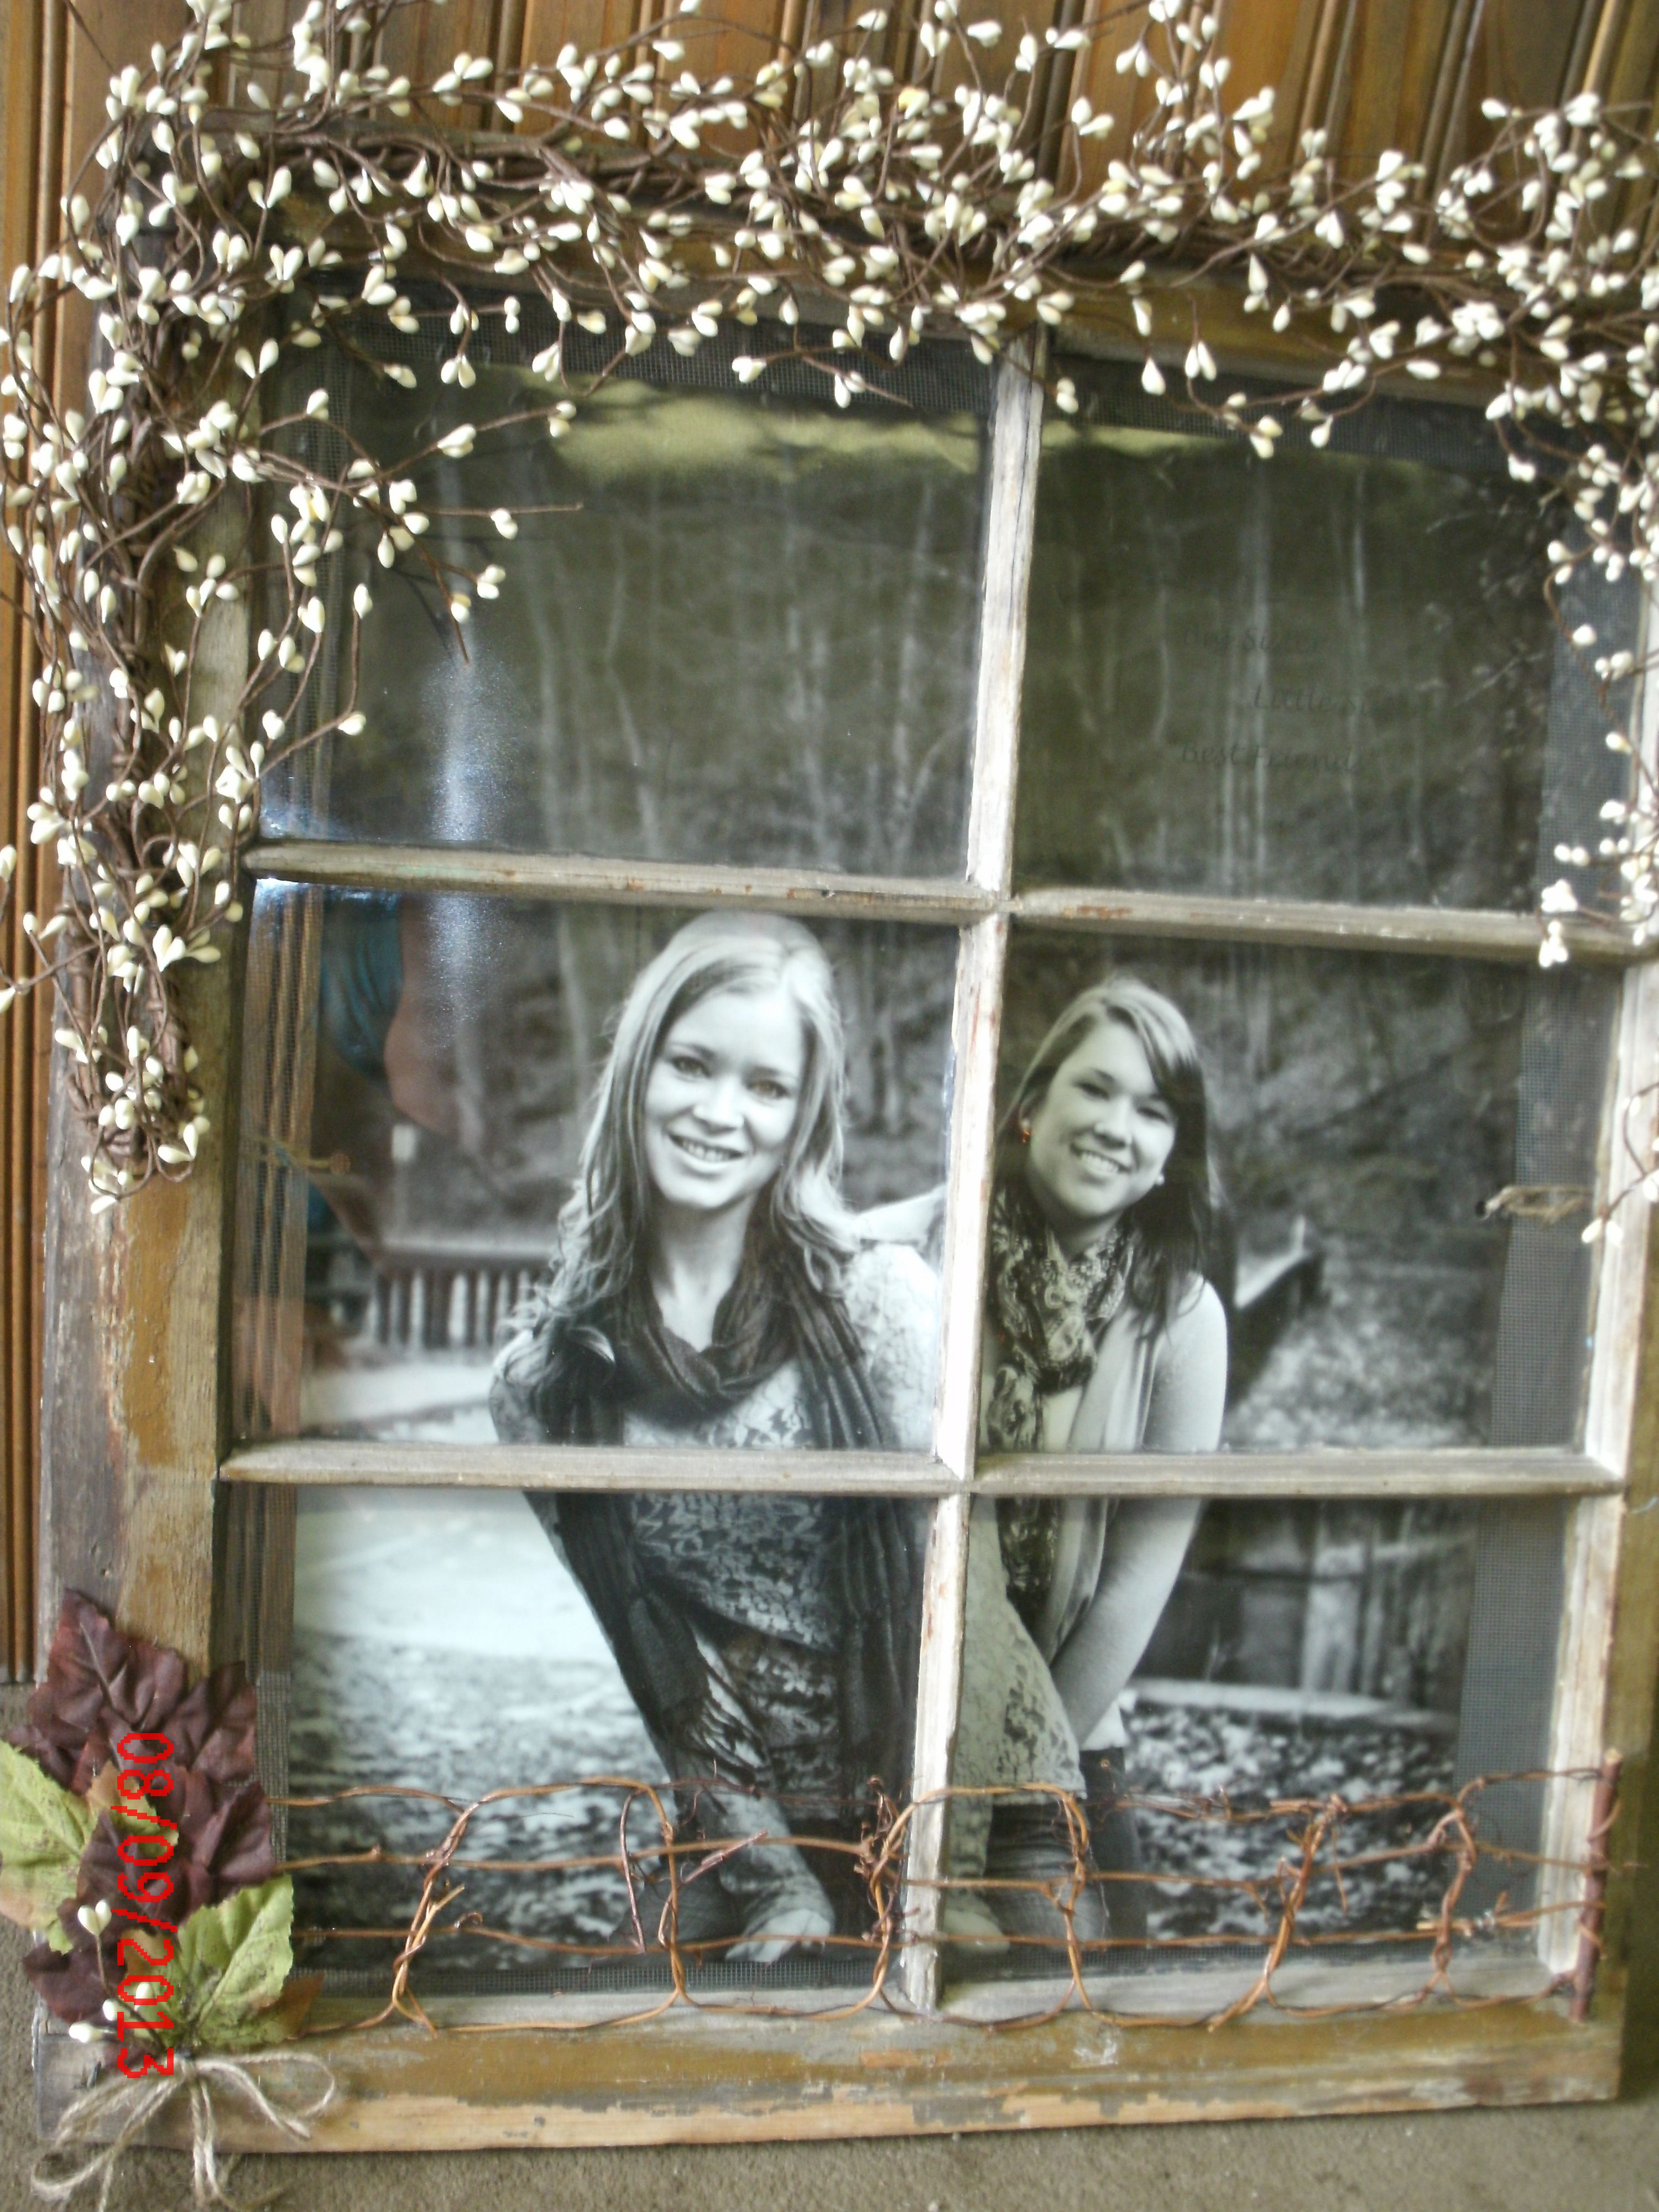 Old window ideas for outside  old window  take a pic of the kids outside and give it to